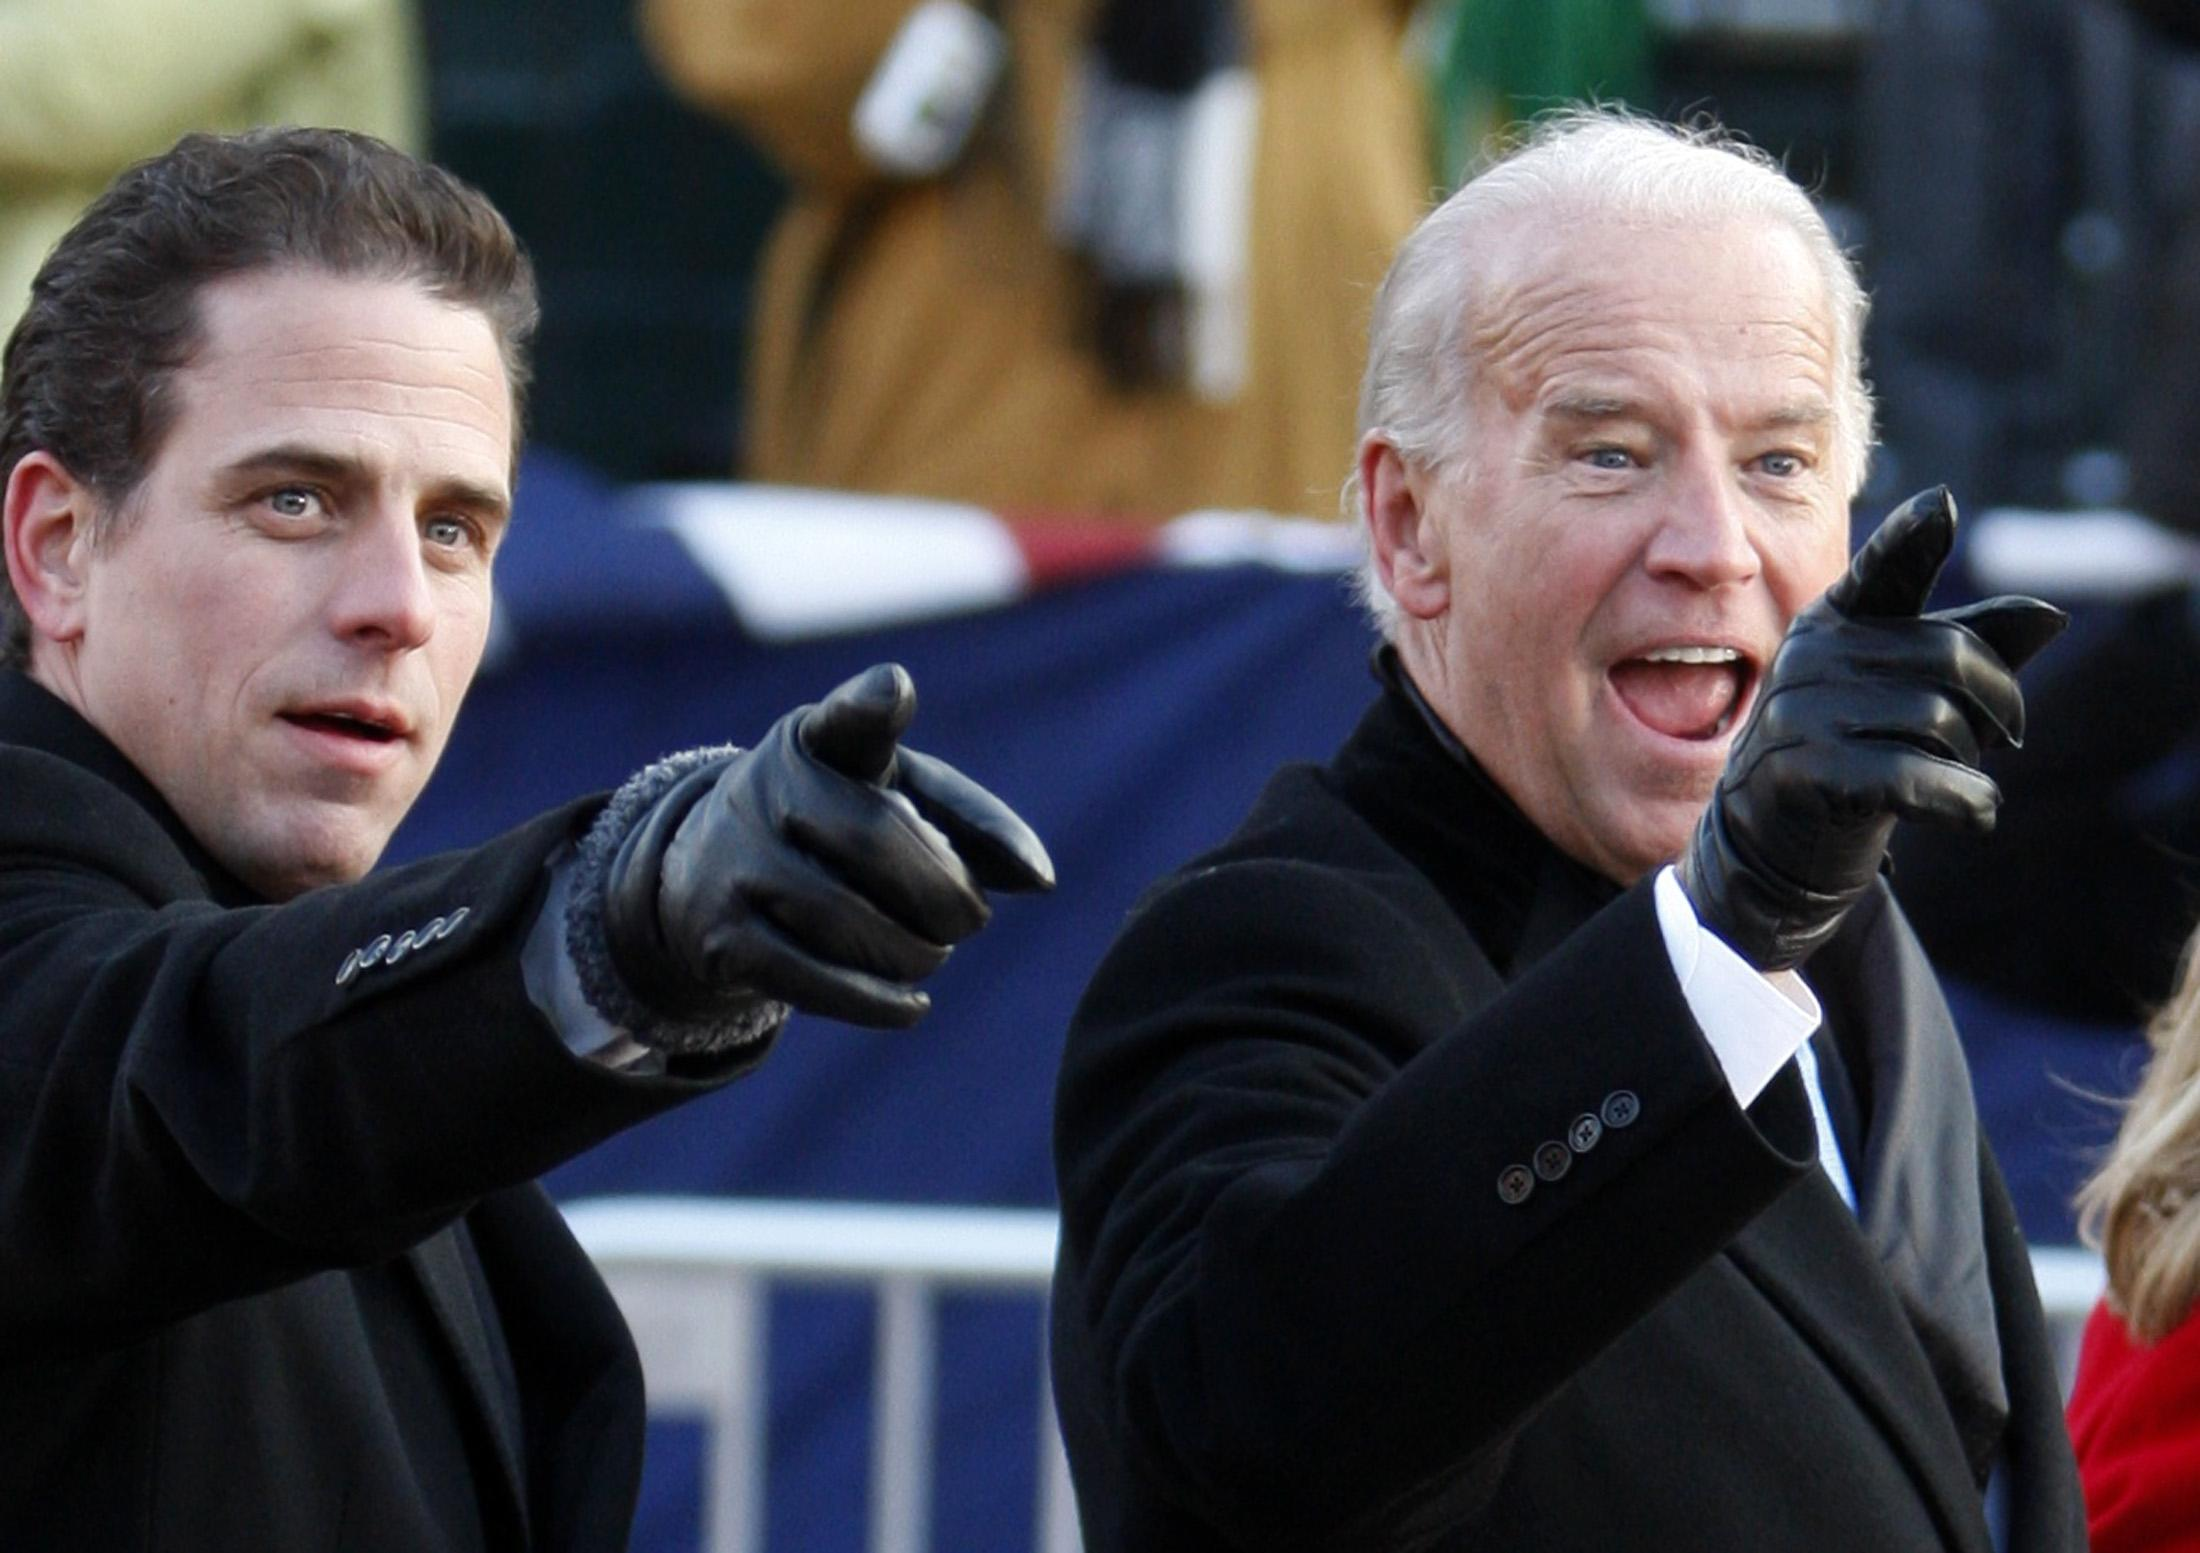 Biden and son